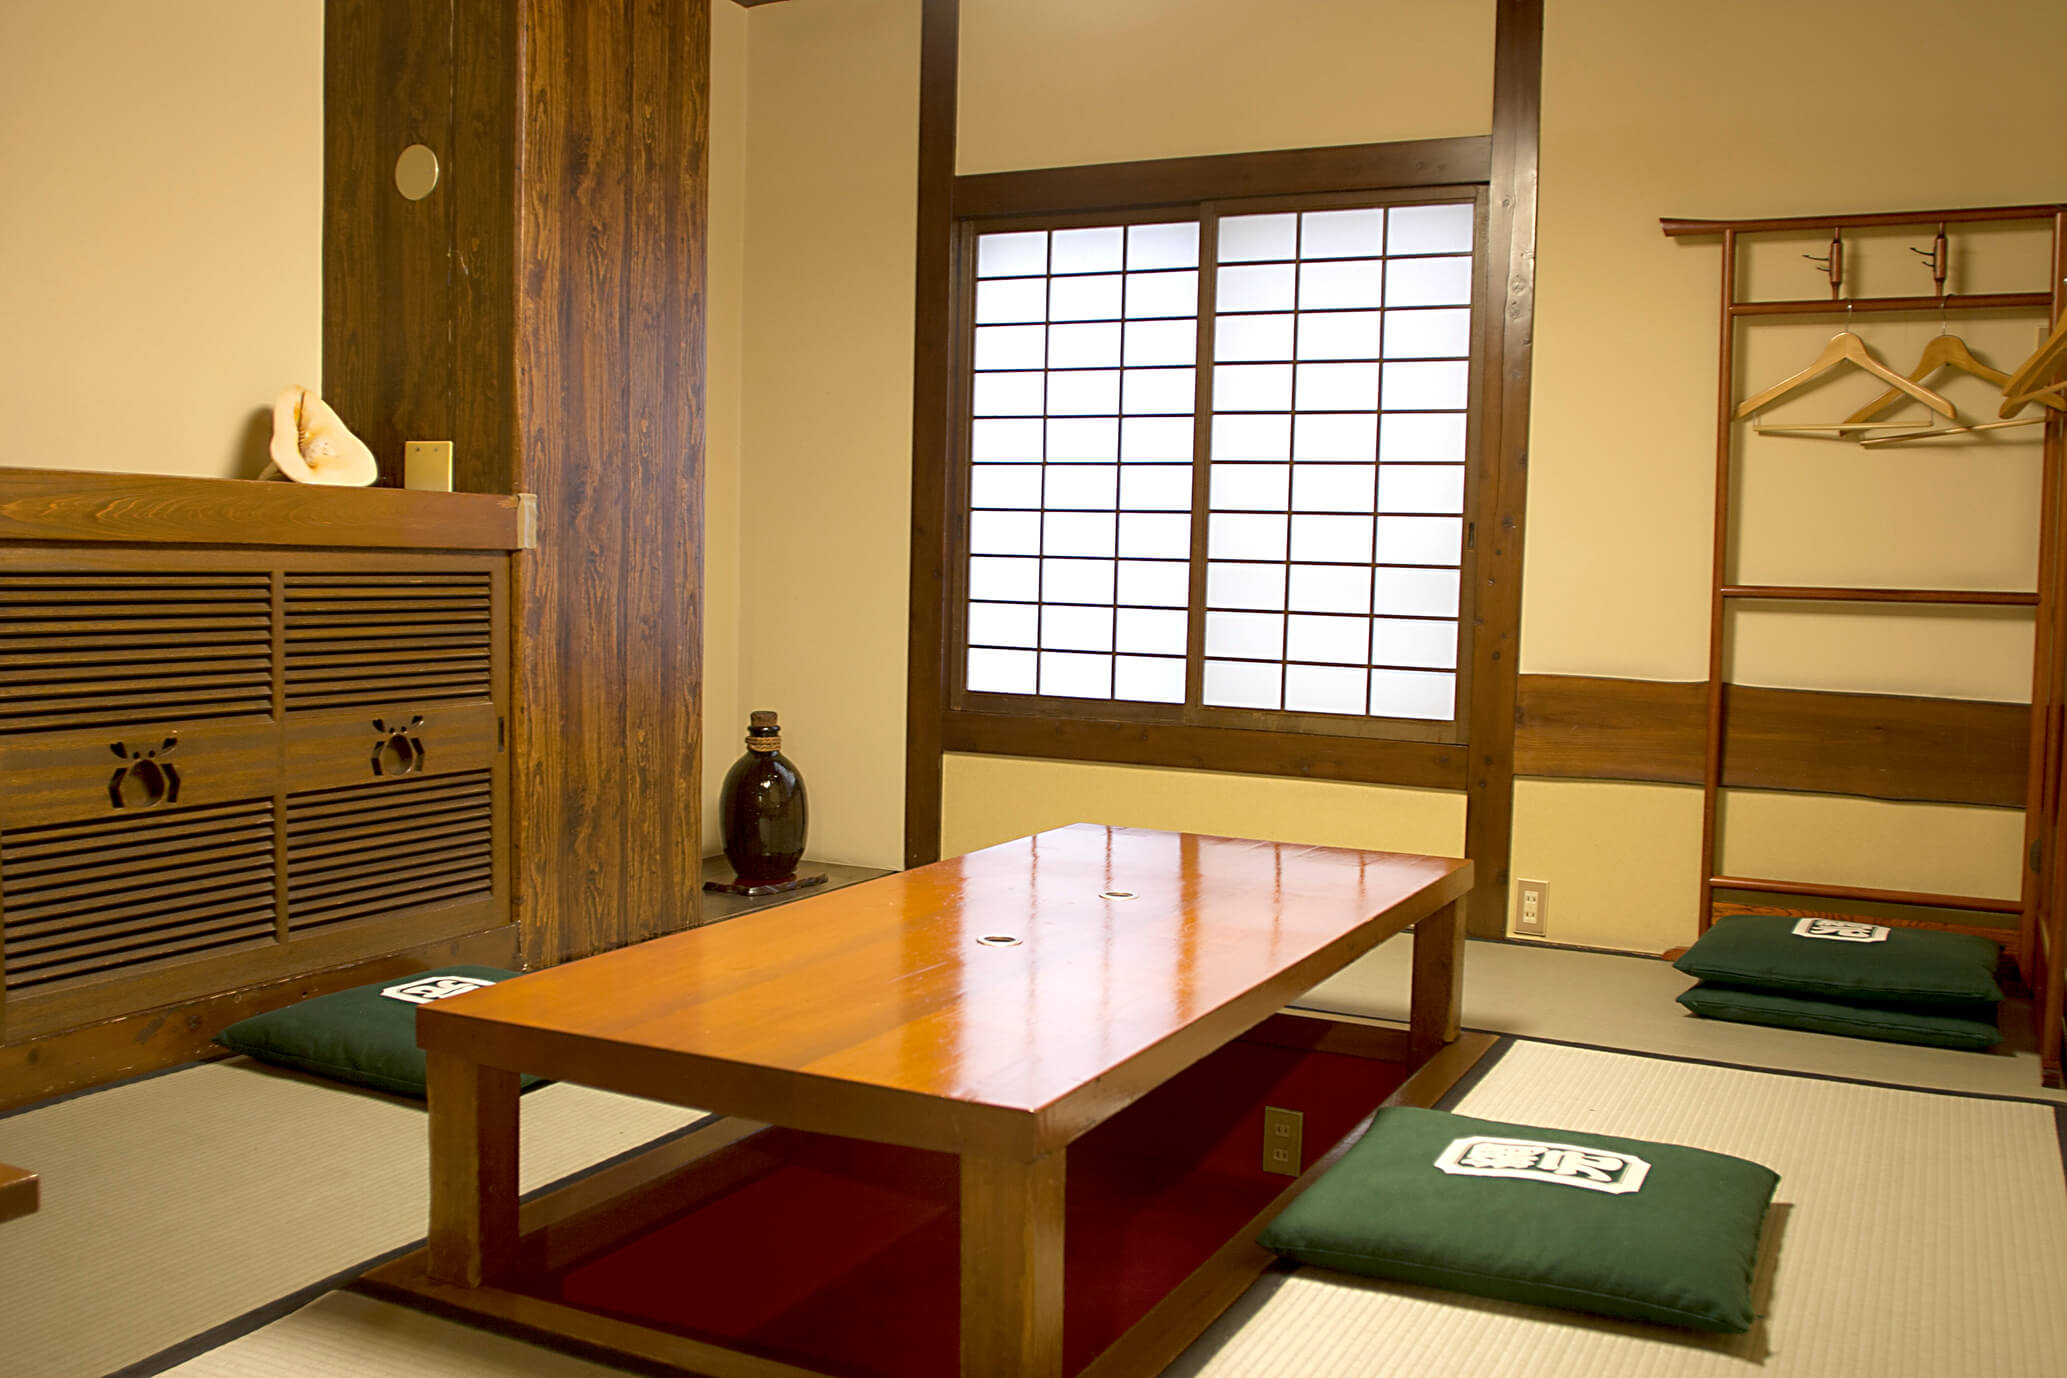 Room (dig seat) of back room Amimoto Bekkan (Annex) introspectiveness - big things and small things of Kani Doraku